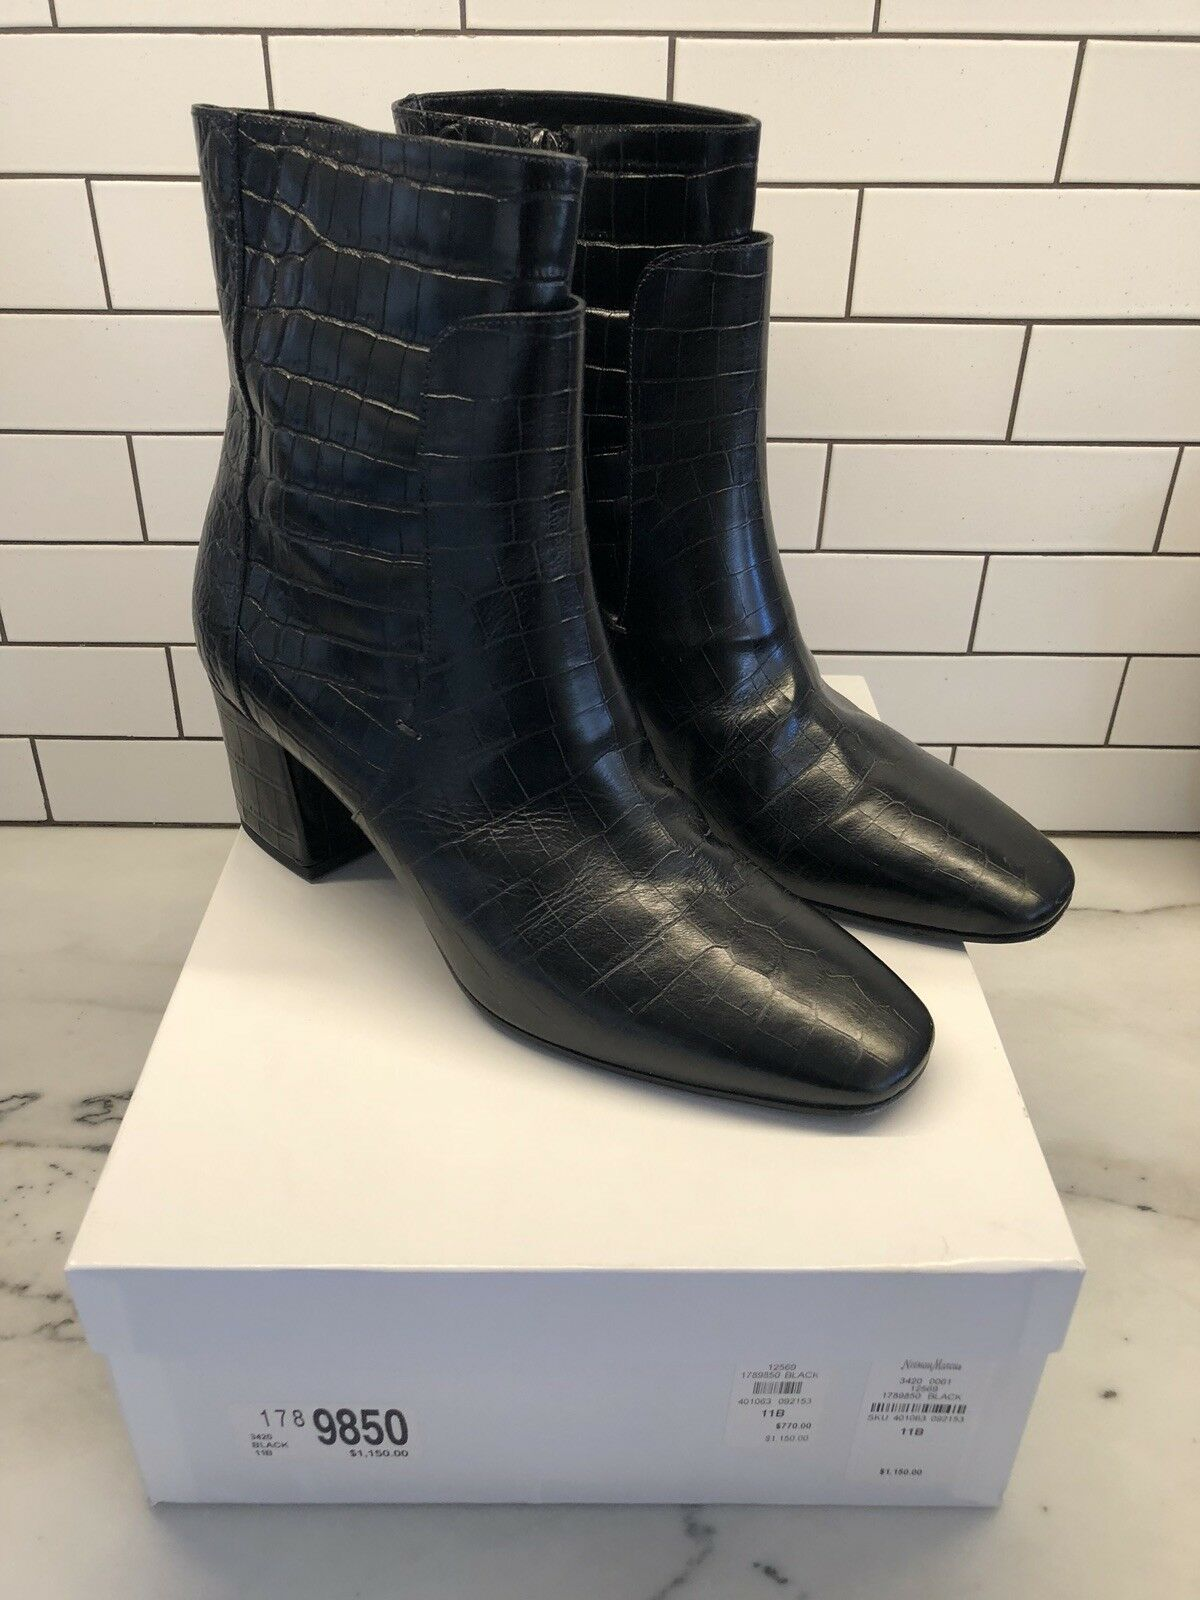 GIVENCHY BLACK STAMPED CROC BOOTS 1150 Neiman Marcus SIZE 41/10-11b worn once!